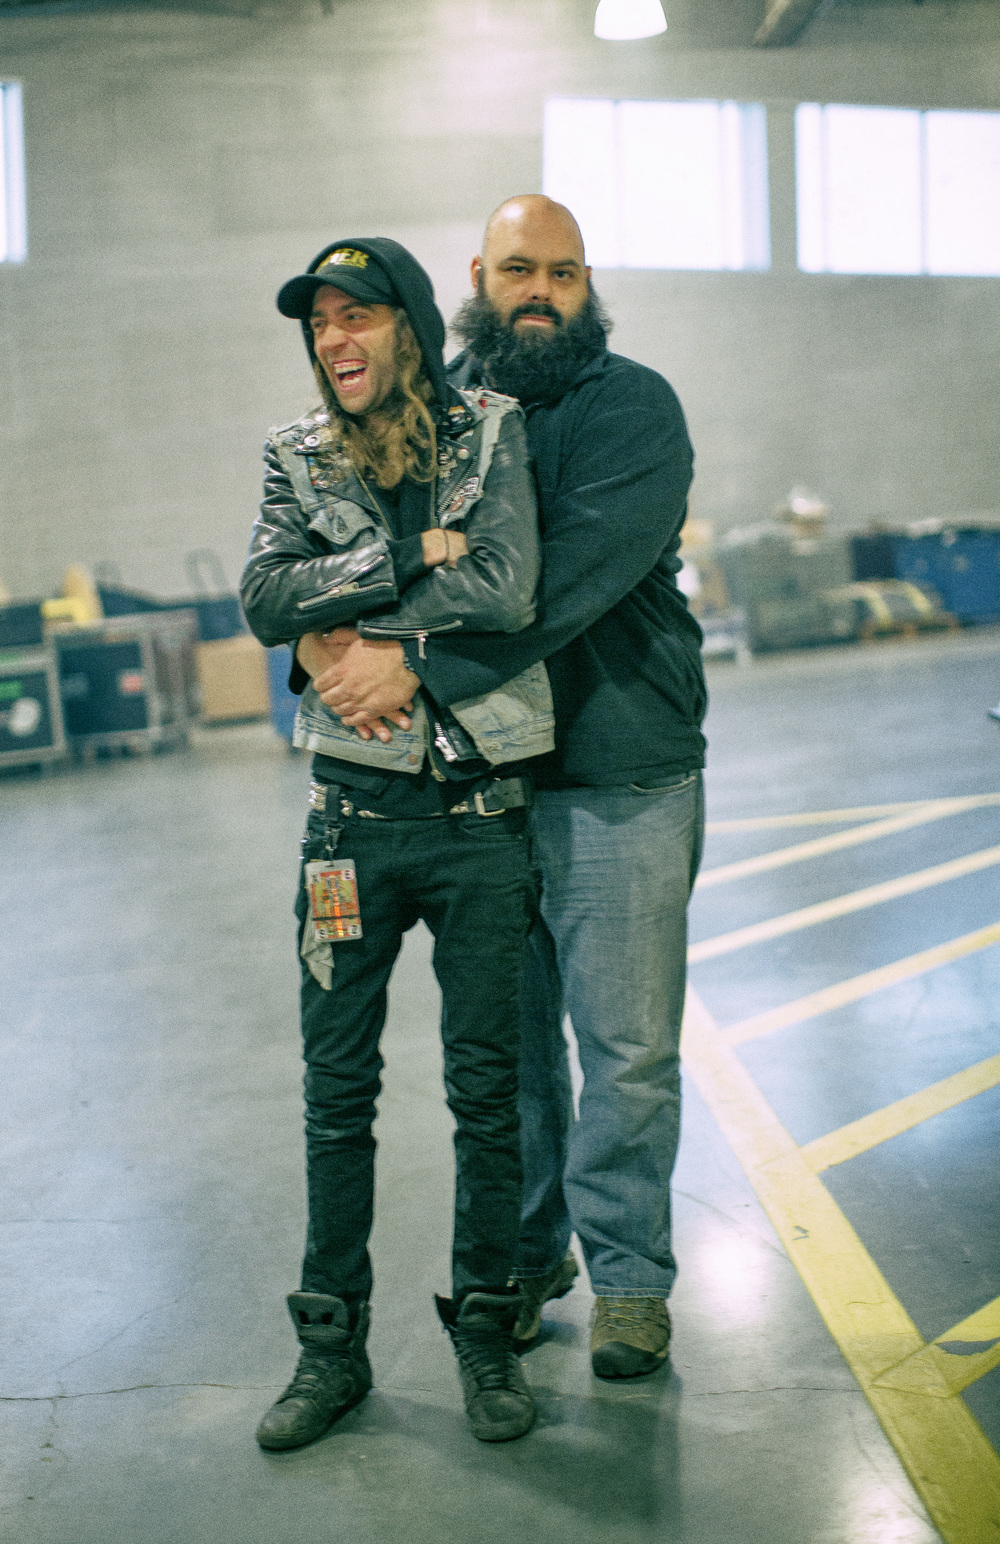 Matt embraces Andy backstage in preparation of a nights work.